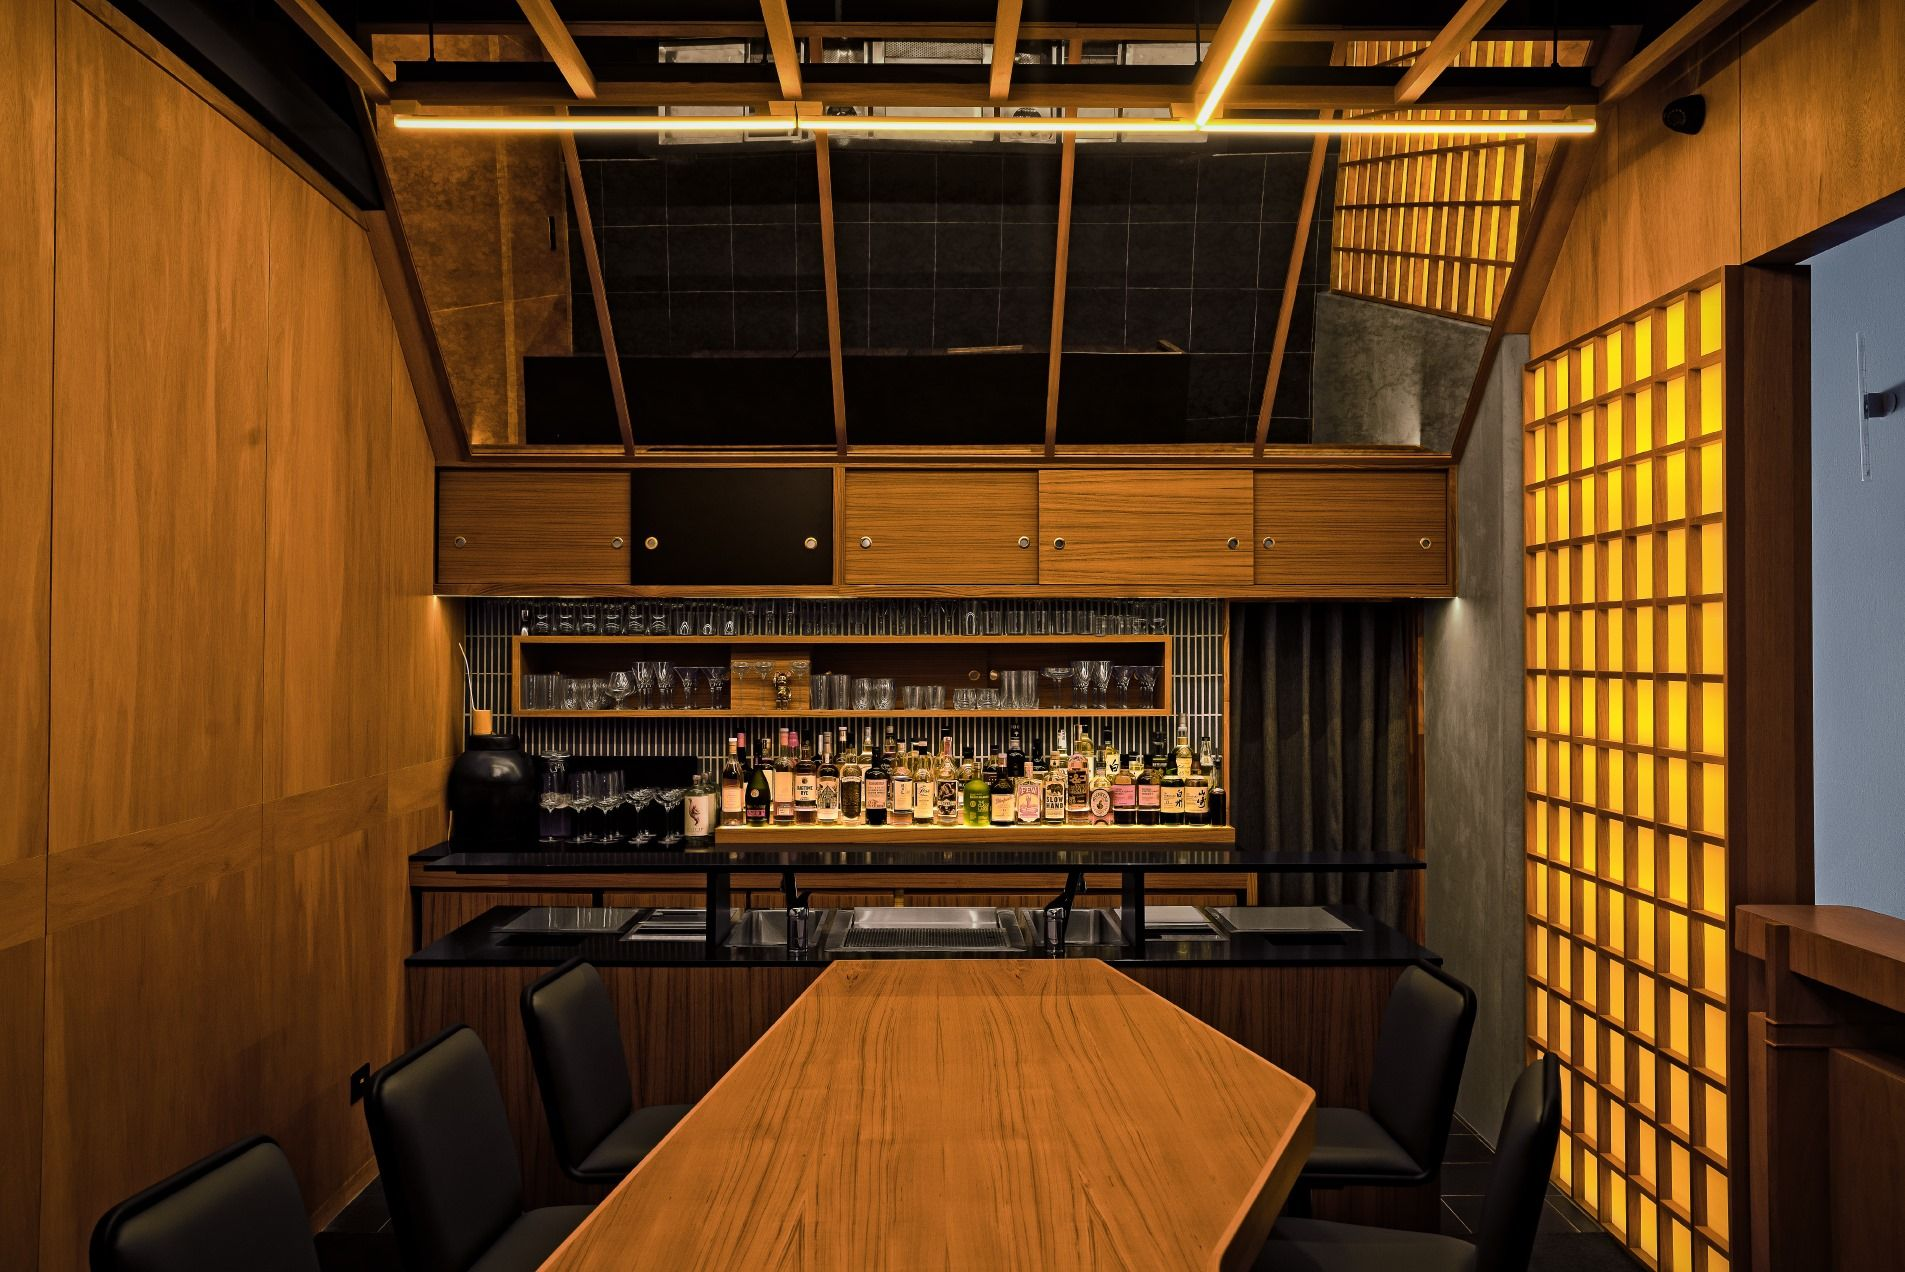 The retro interiors of Live Twice are inspired by a Japanese take on mid-century modern aesthetics (Photo: Courtesy of Jigger & Pony)